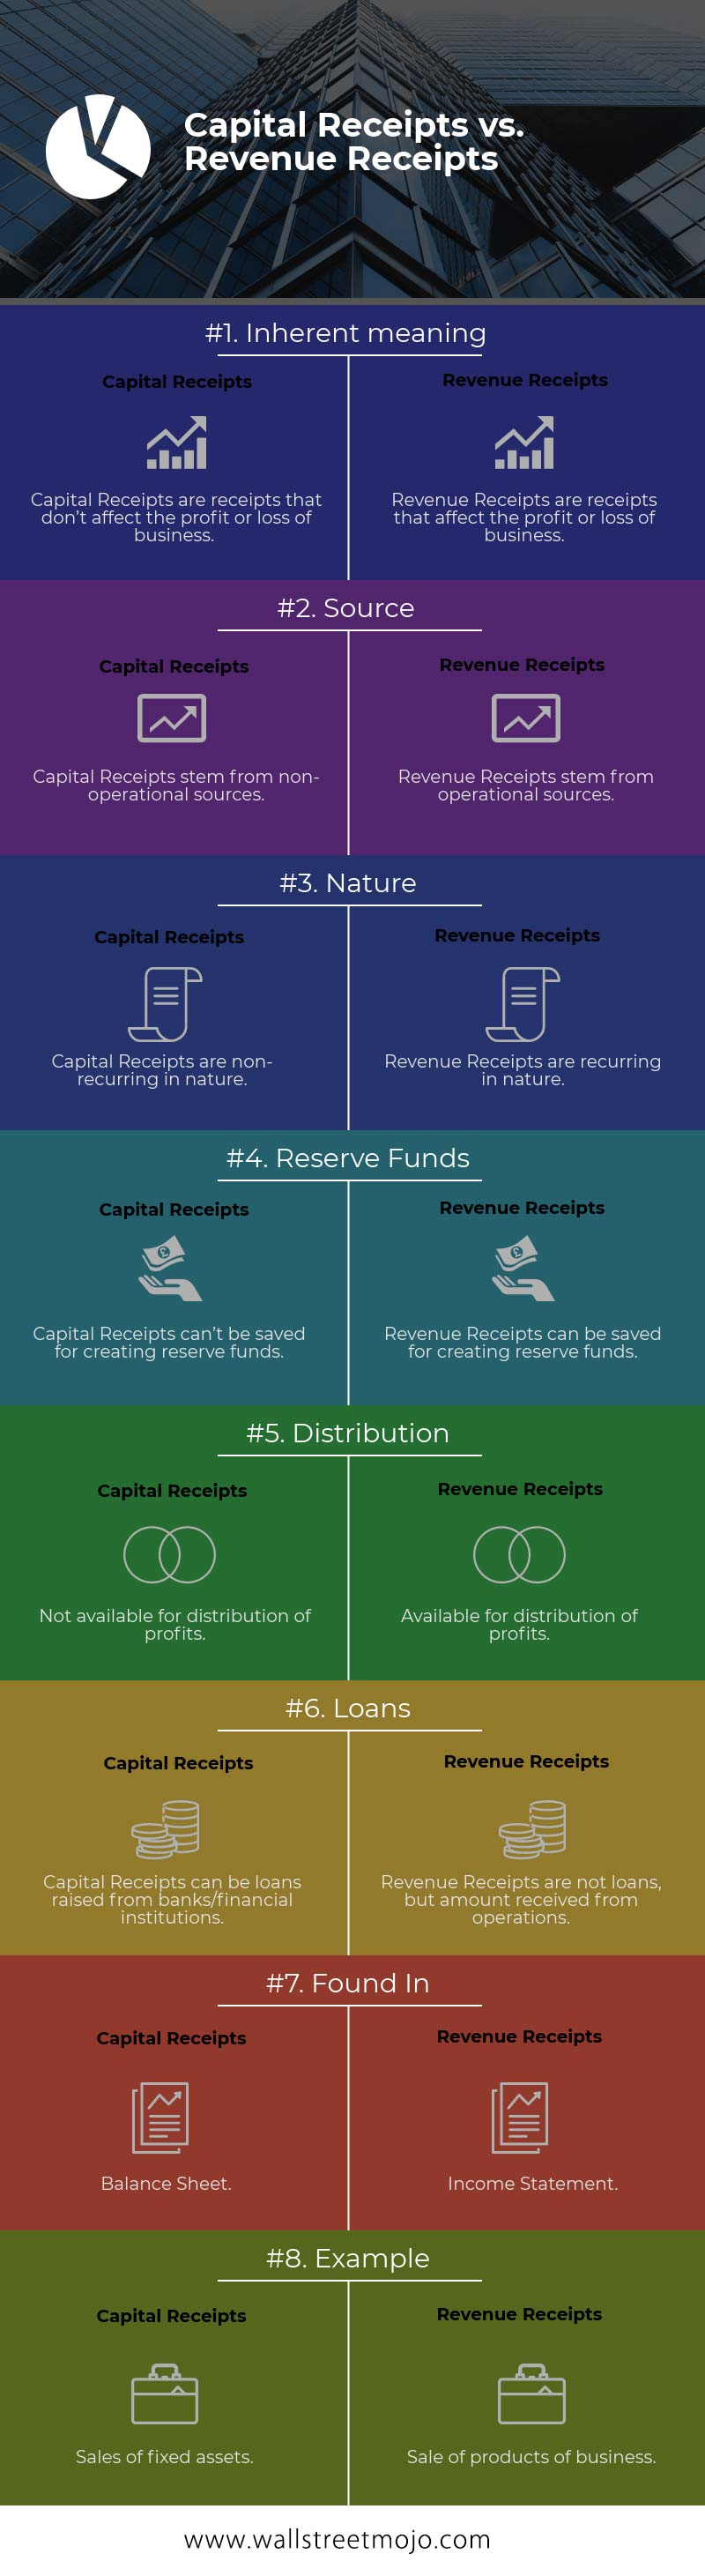 Capital Receipts Vs Revenue Receipts Top 8 Differences